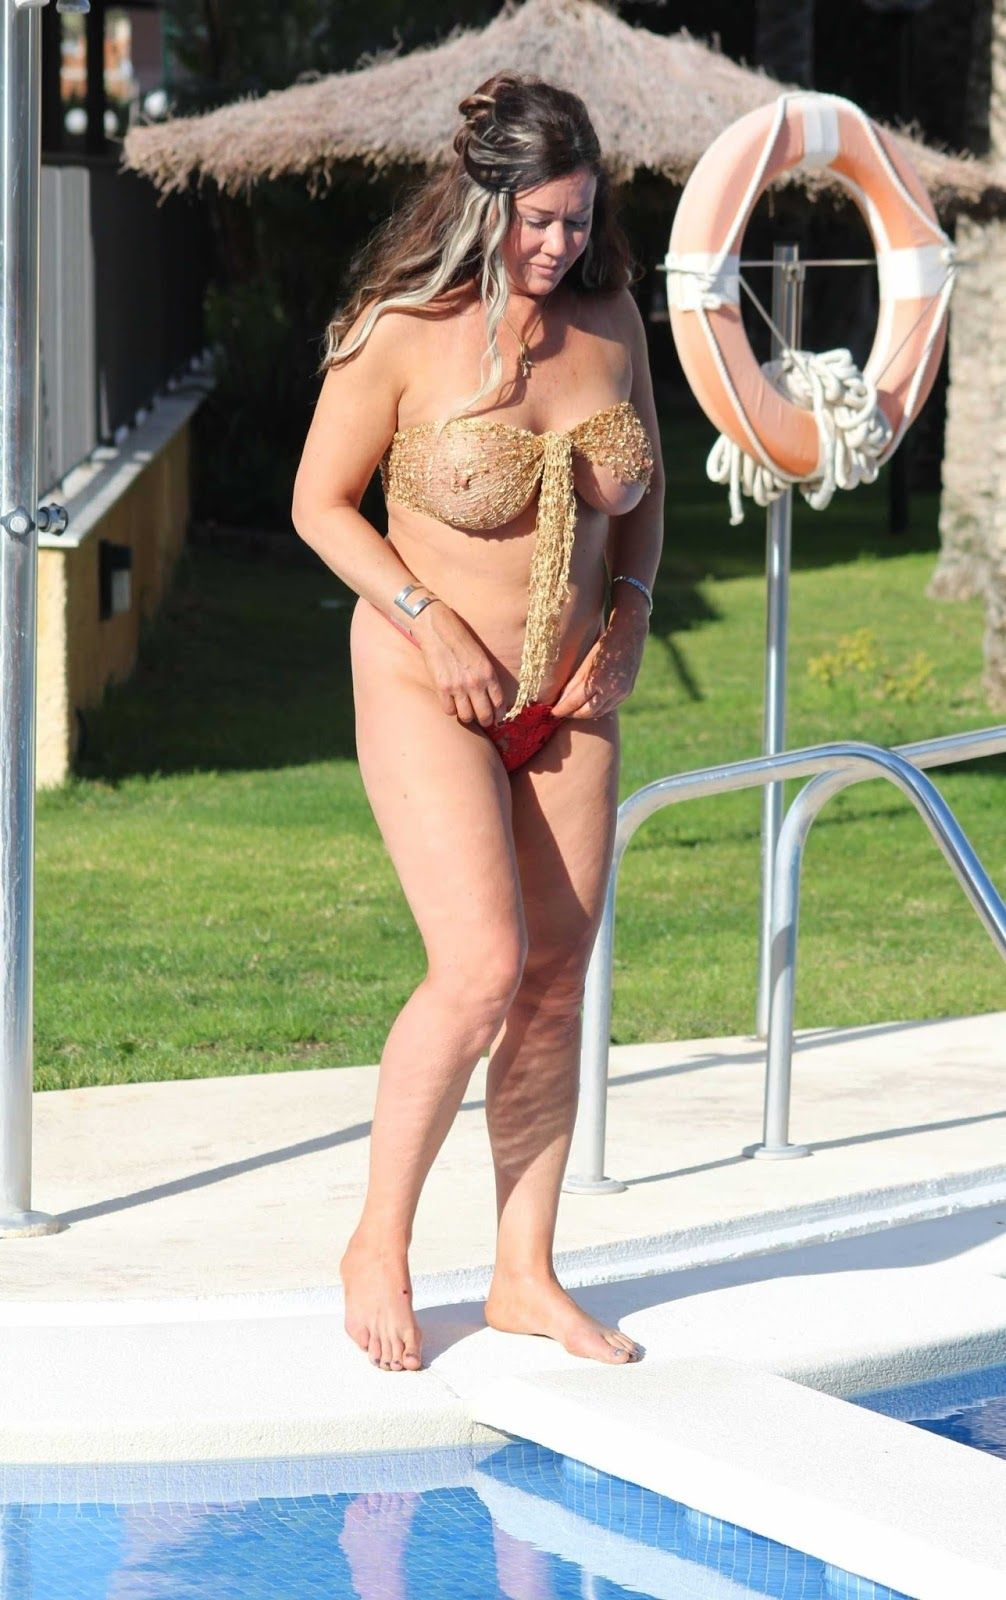 The hottest lisa appleton photos from the beach